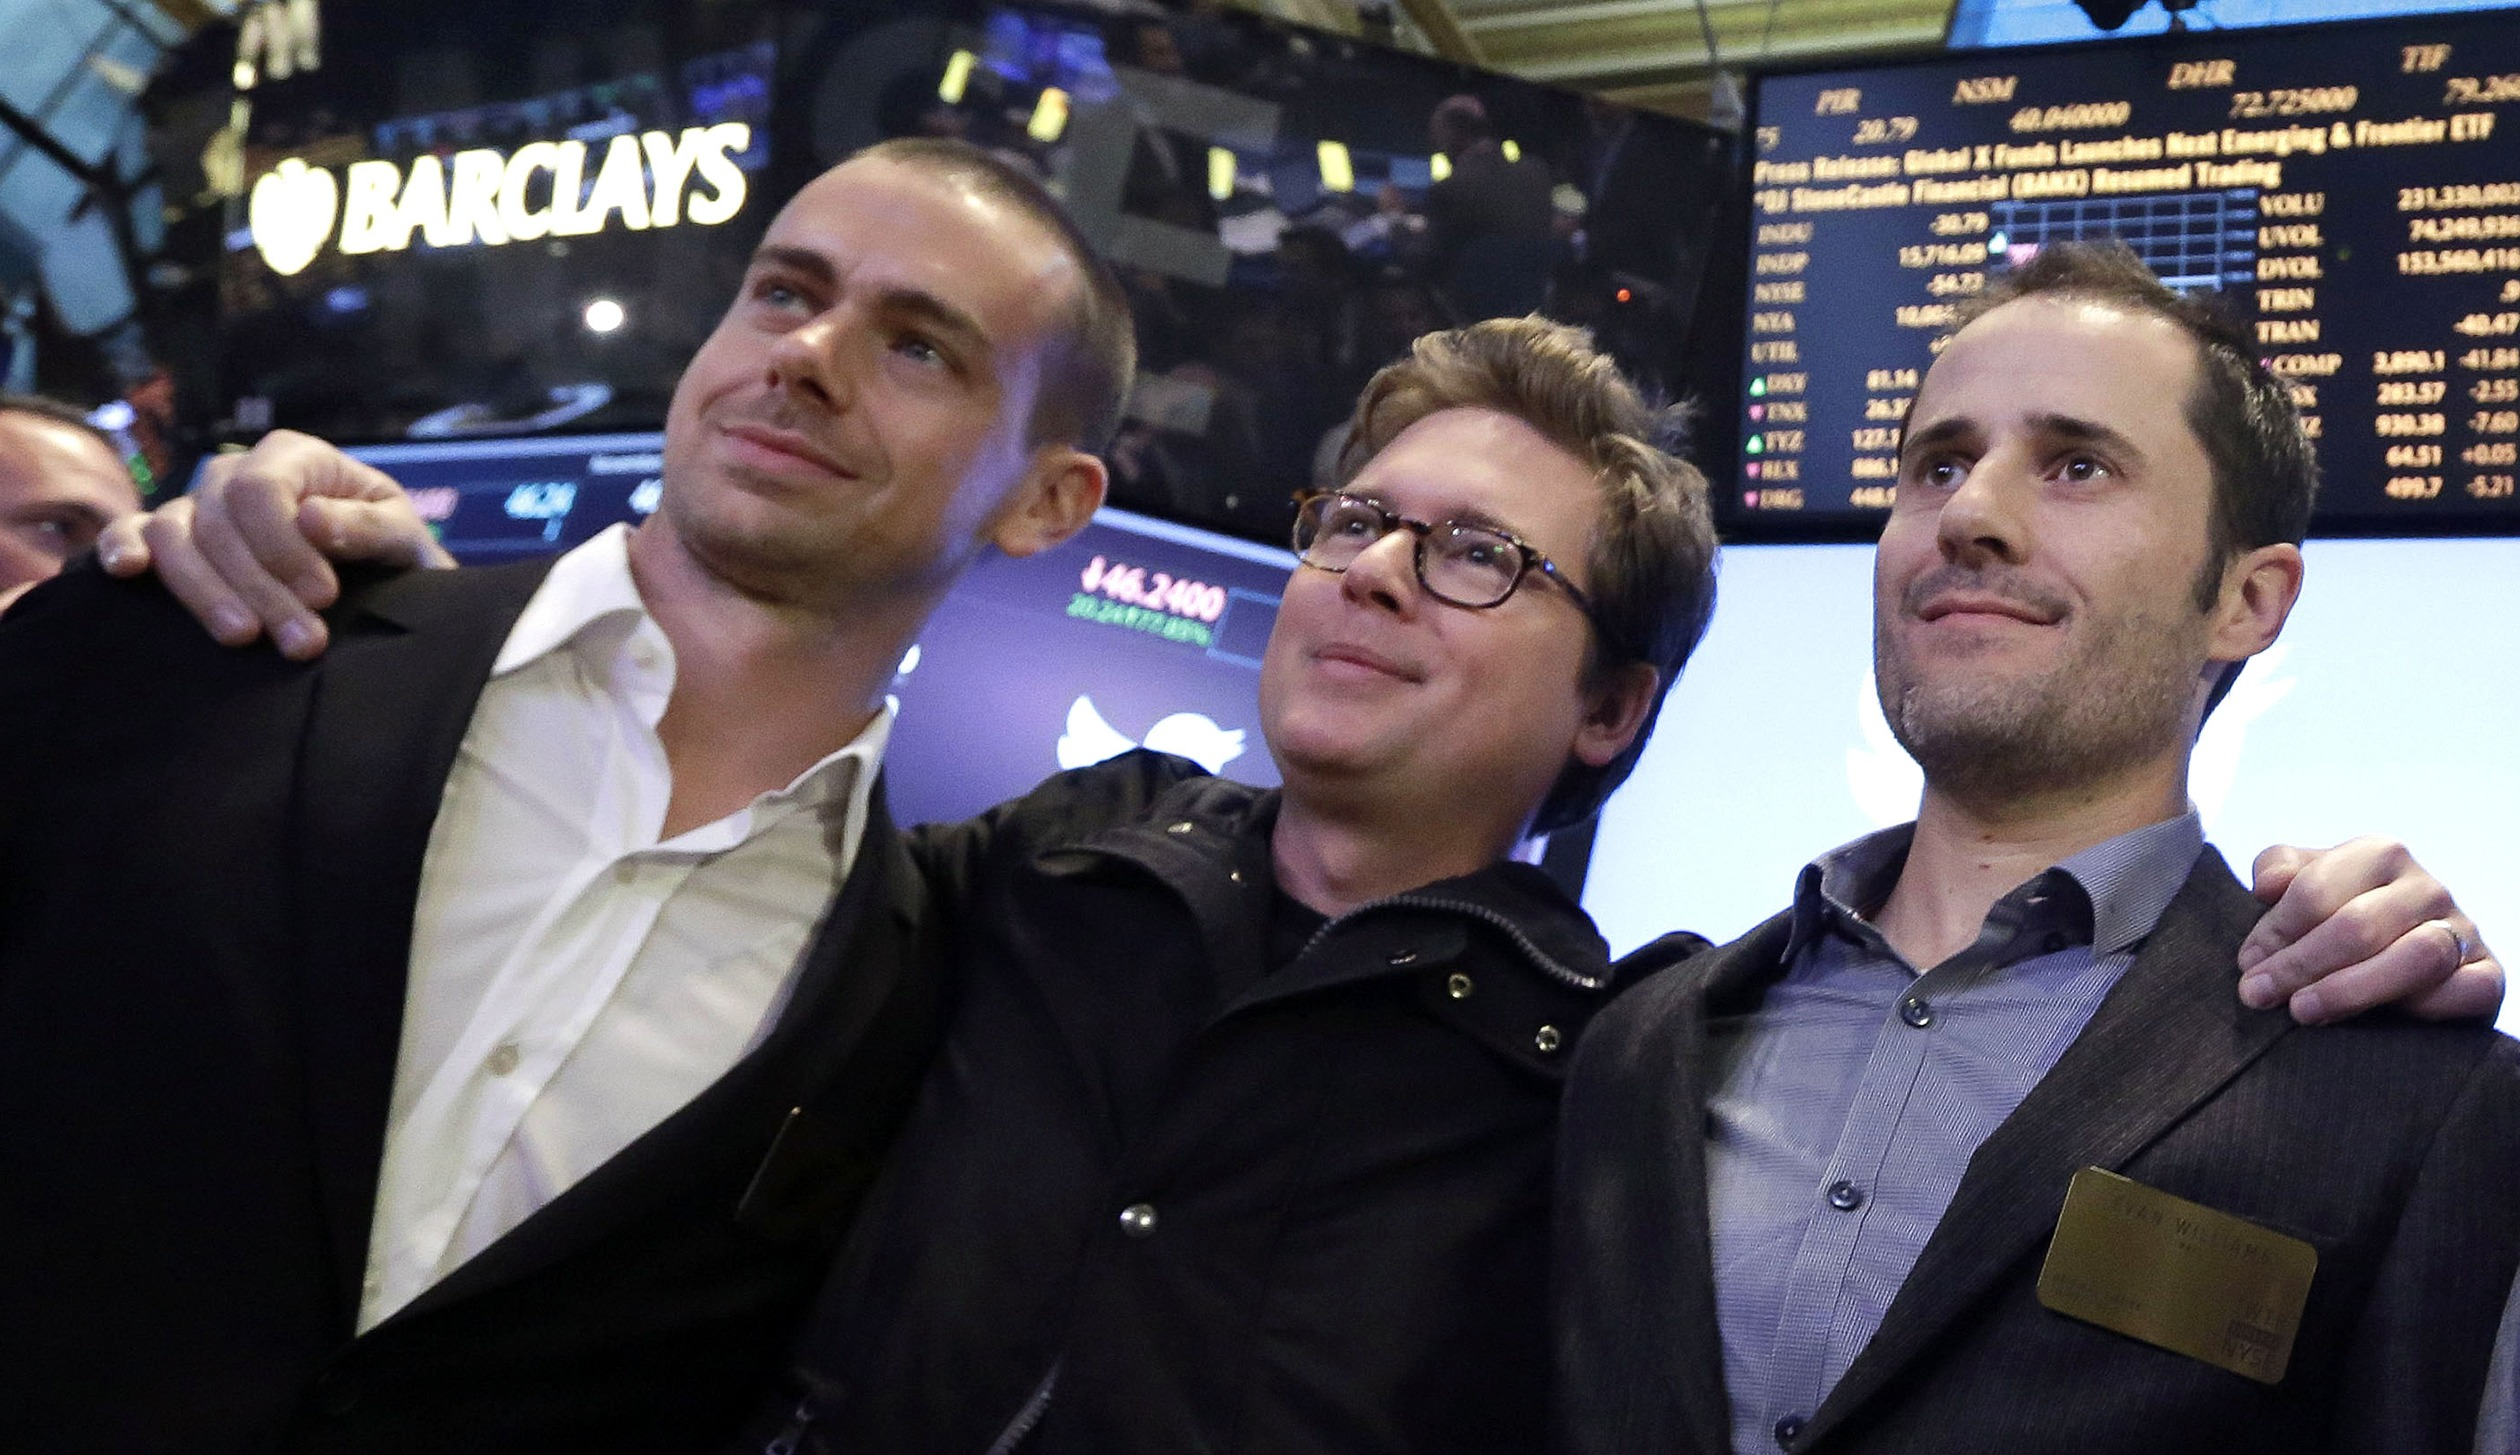 Dick Costolo, Jack Dorsey, Evan Williams, Biz Stone